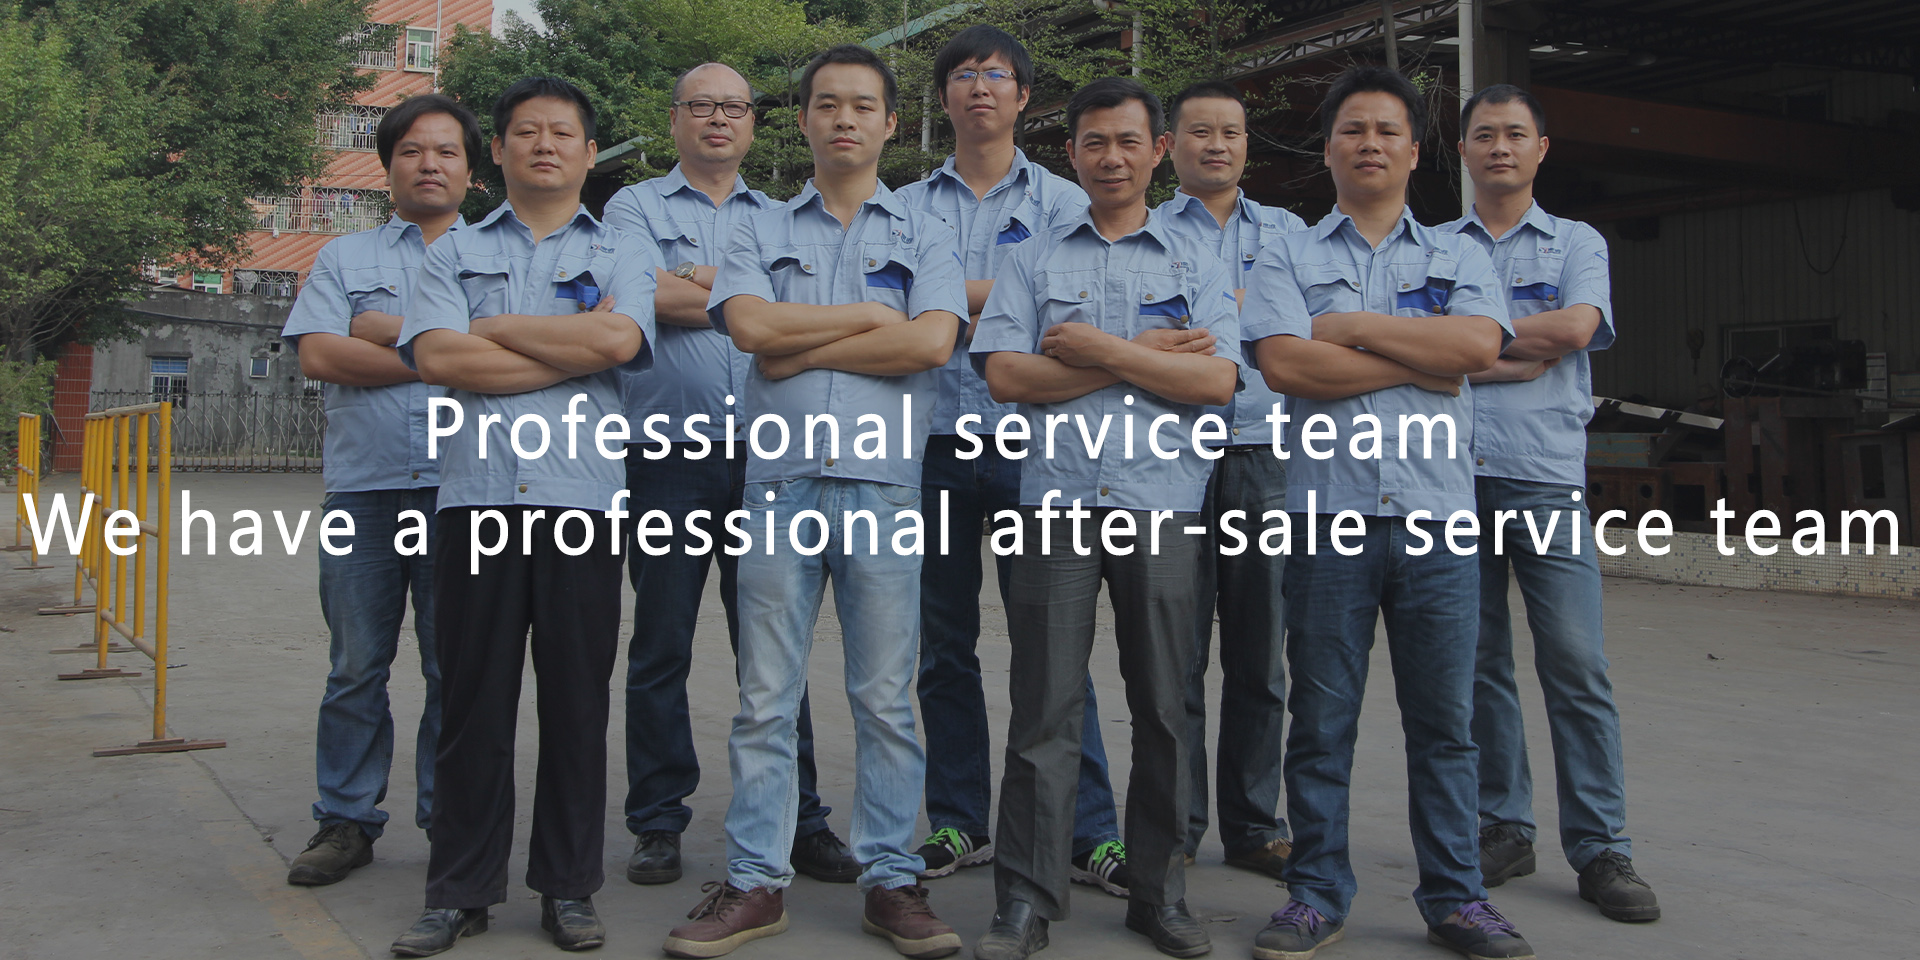 Professional service team